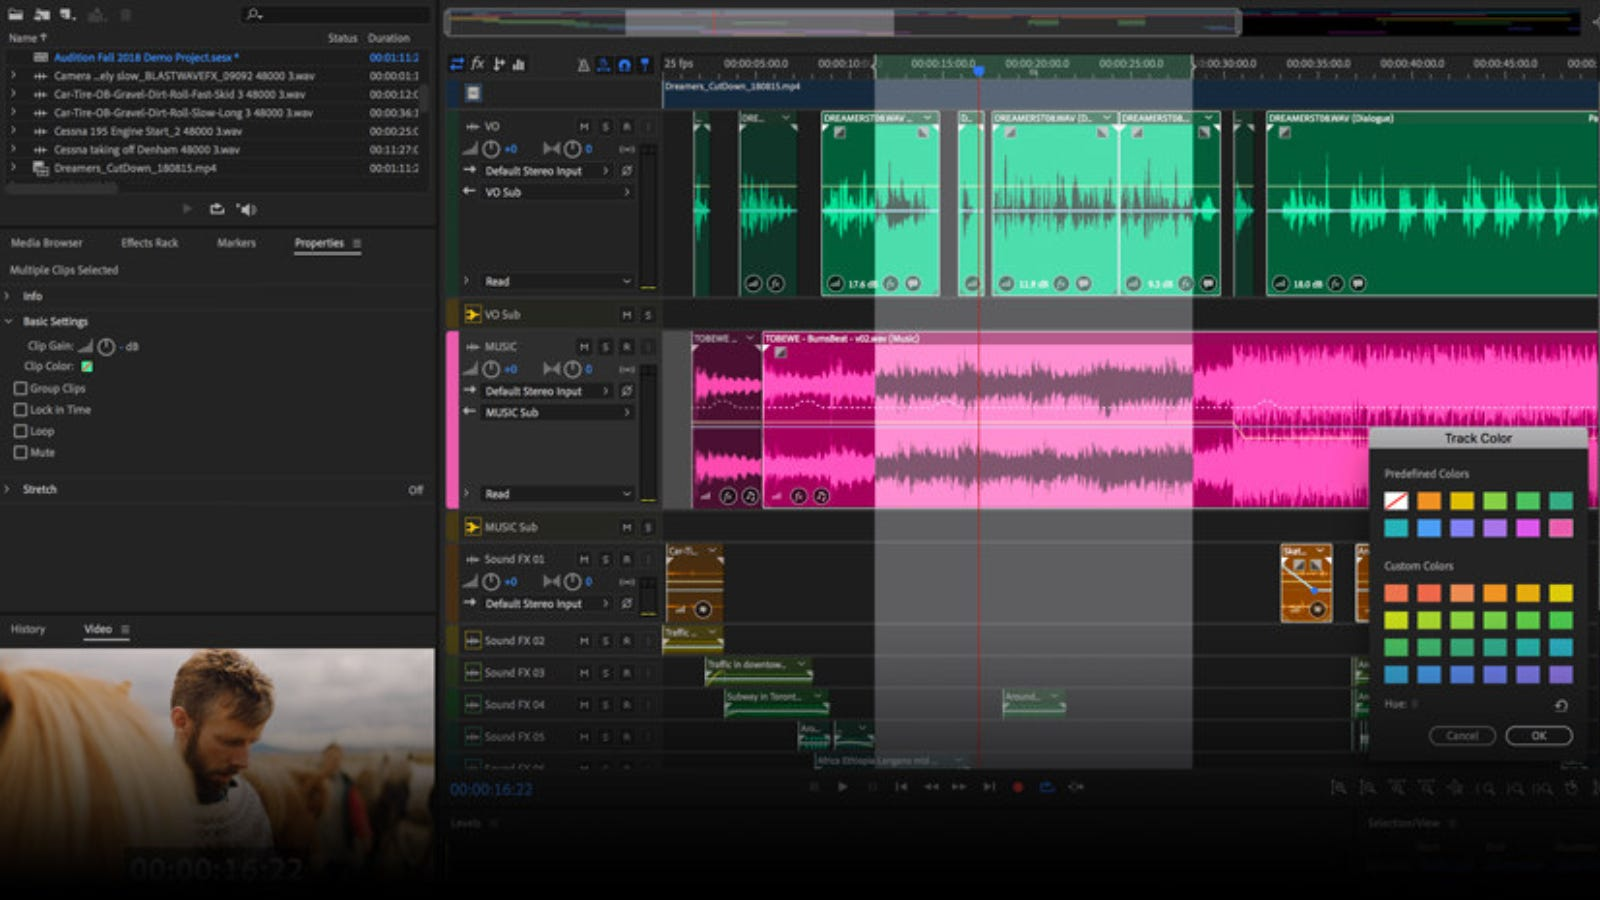 Adobe Audition main editing page